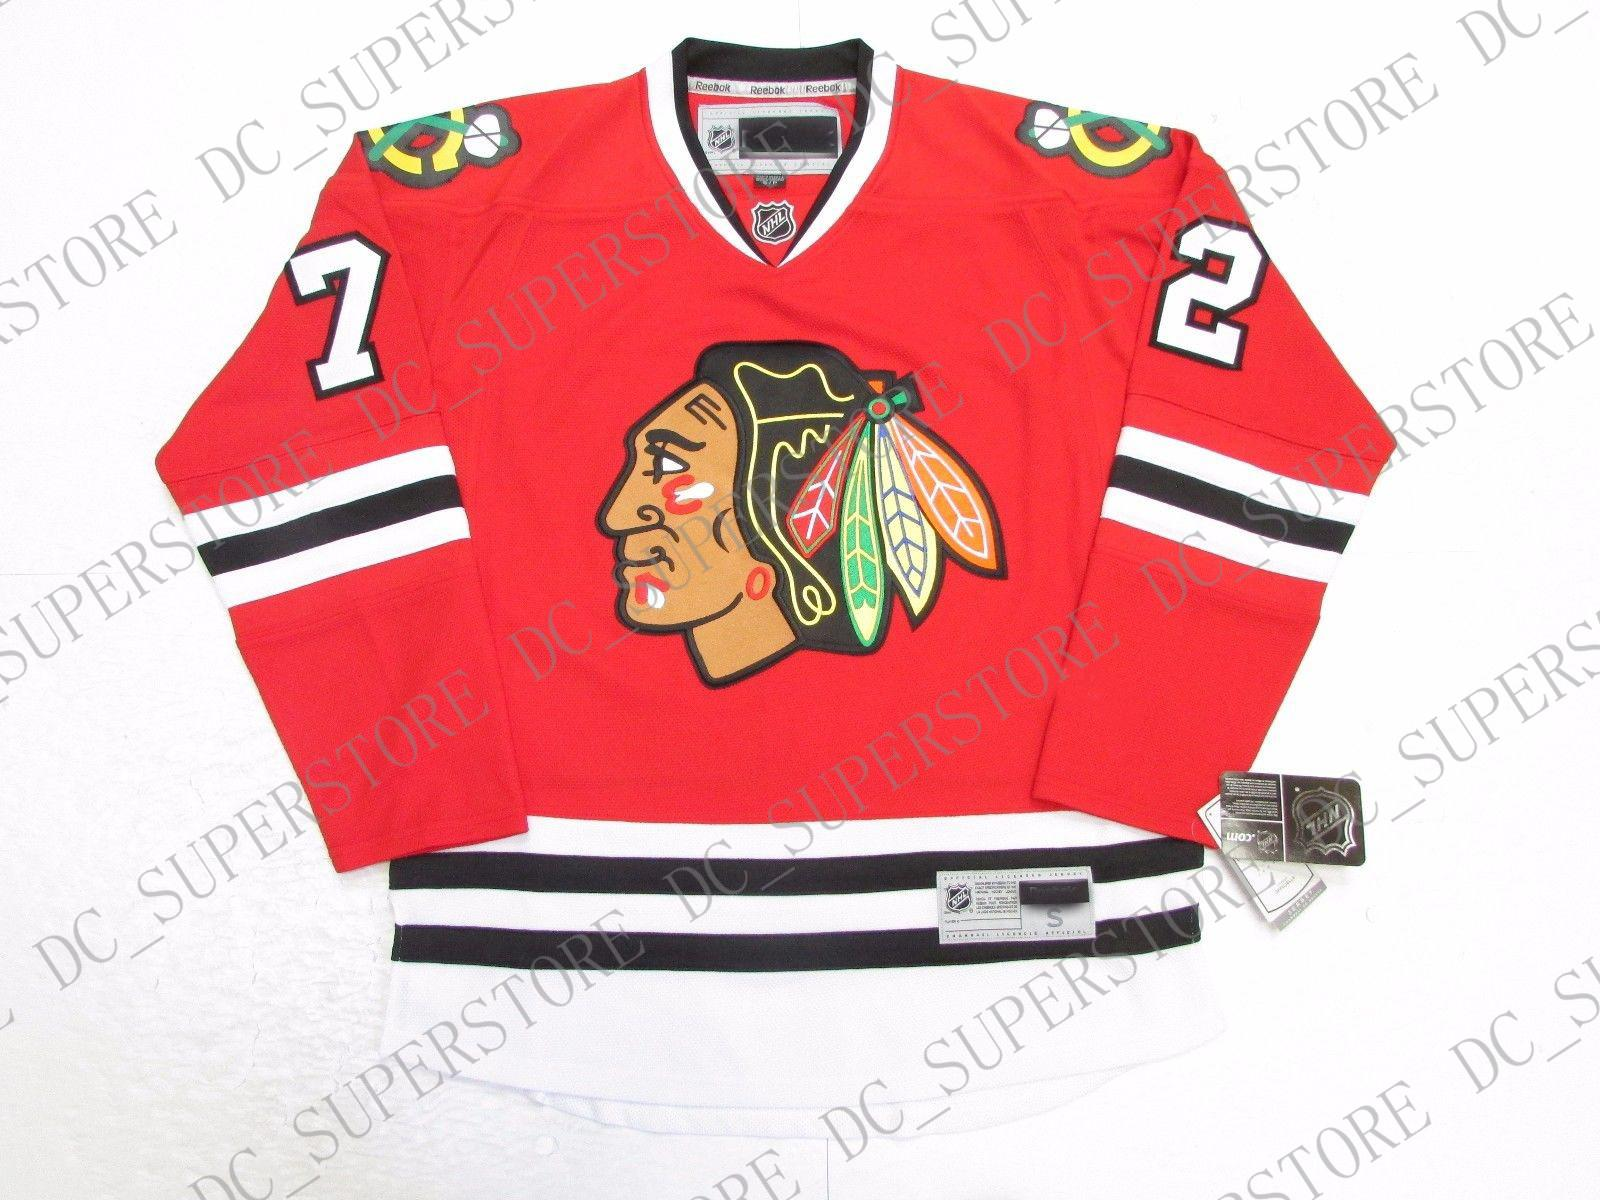 hot sale online d342d b5c4f Cheap custom ARTEMI PANARIN CHICAGO BLACKHAWKS HOME PREMIER 7185 HOCKEY  JERSEY stitch add any number any name Mens Hockey Jersey XS-5XL